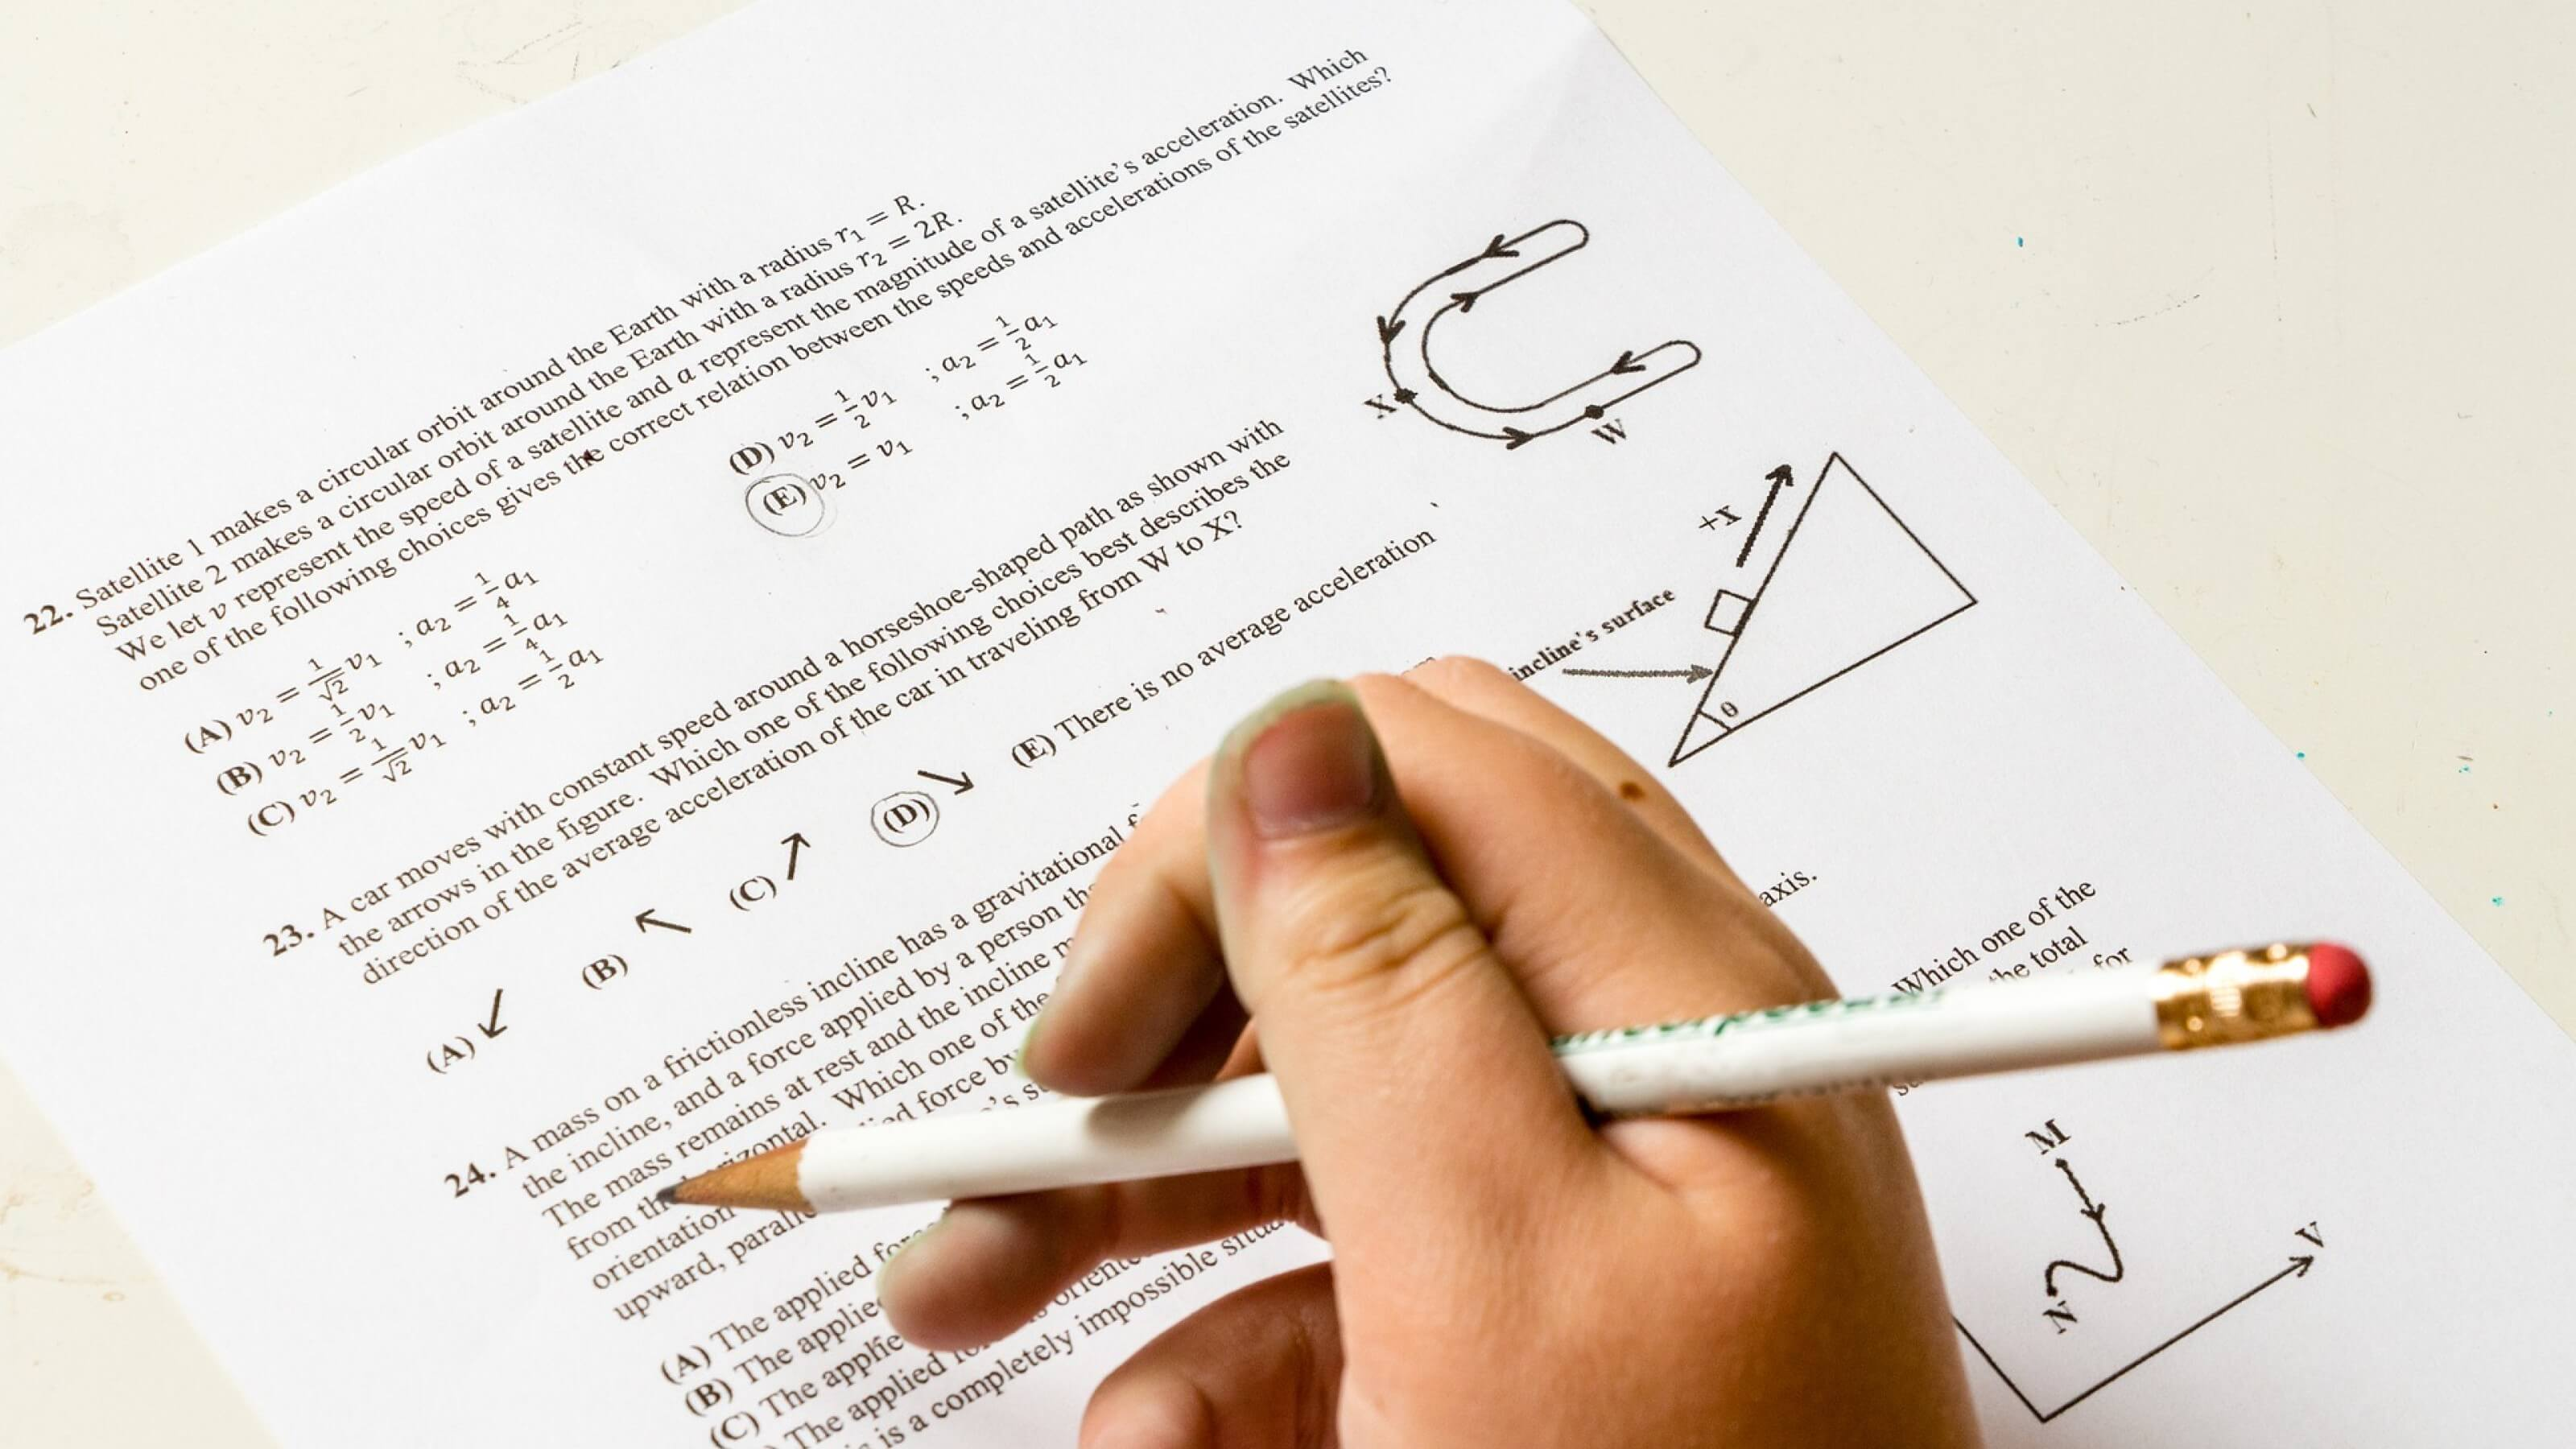 A close up of a hand holding a pencil filling in an exam paper.